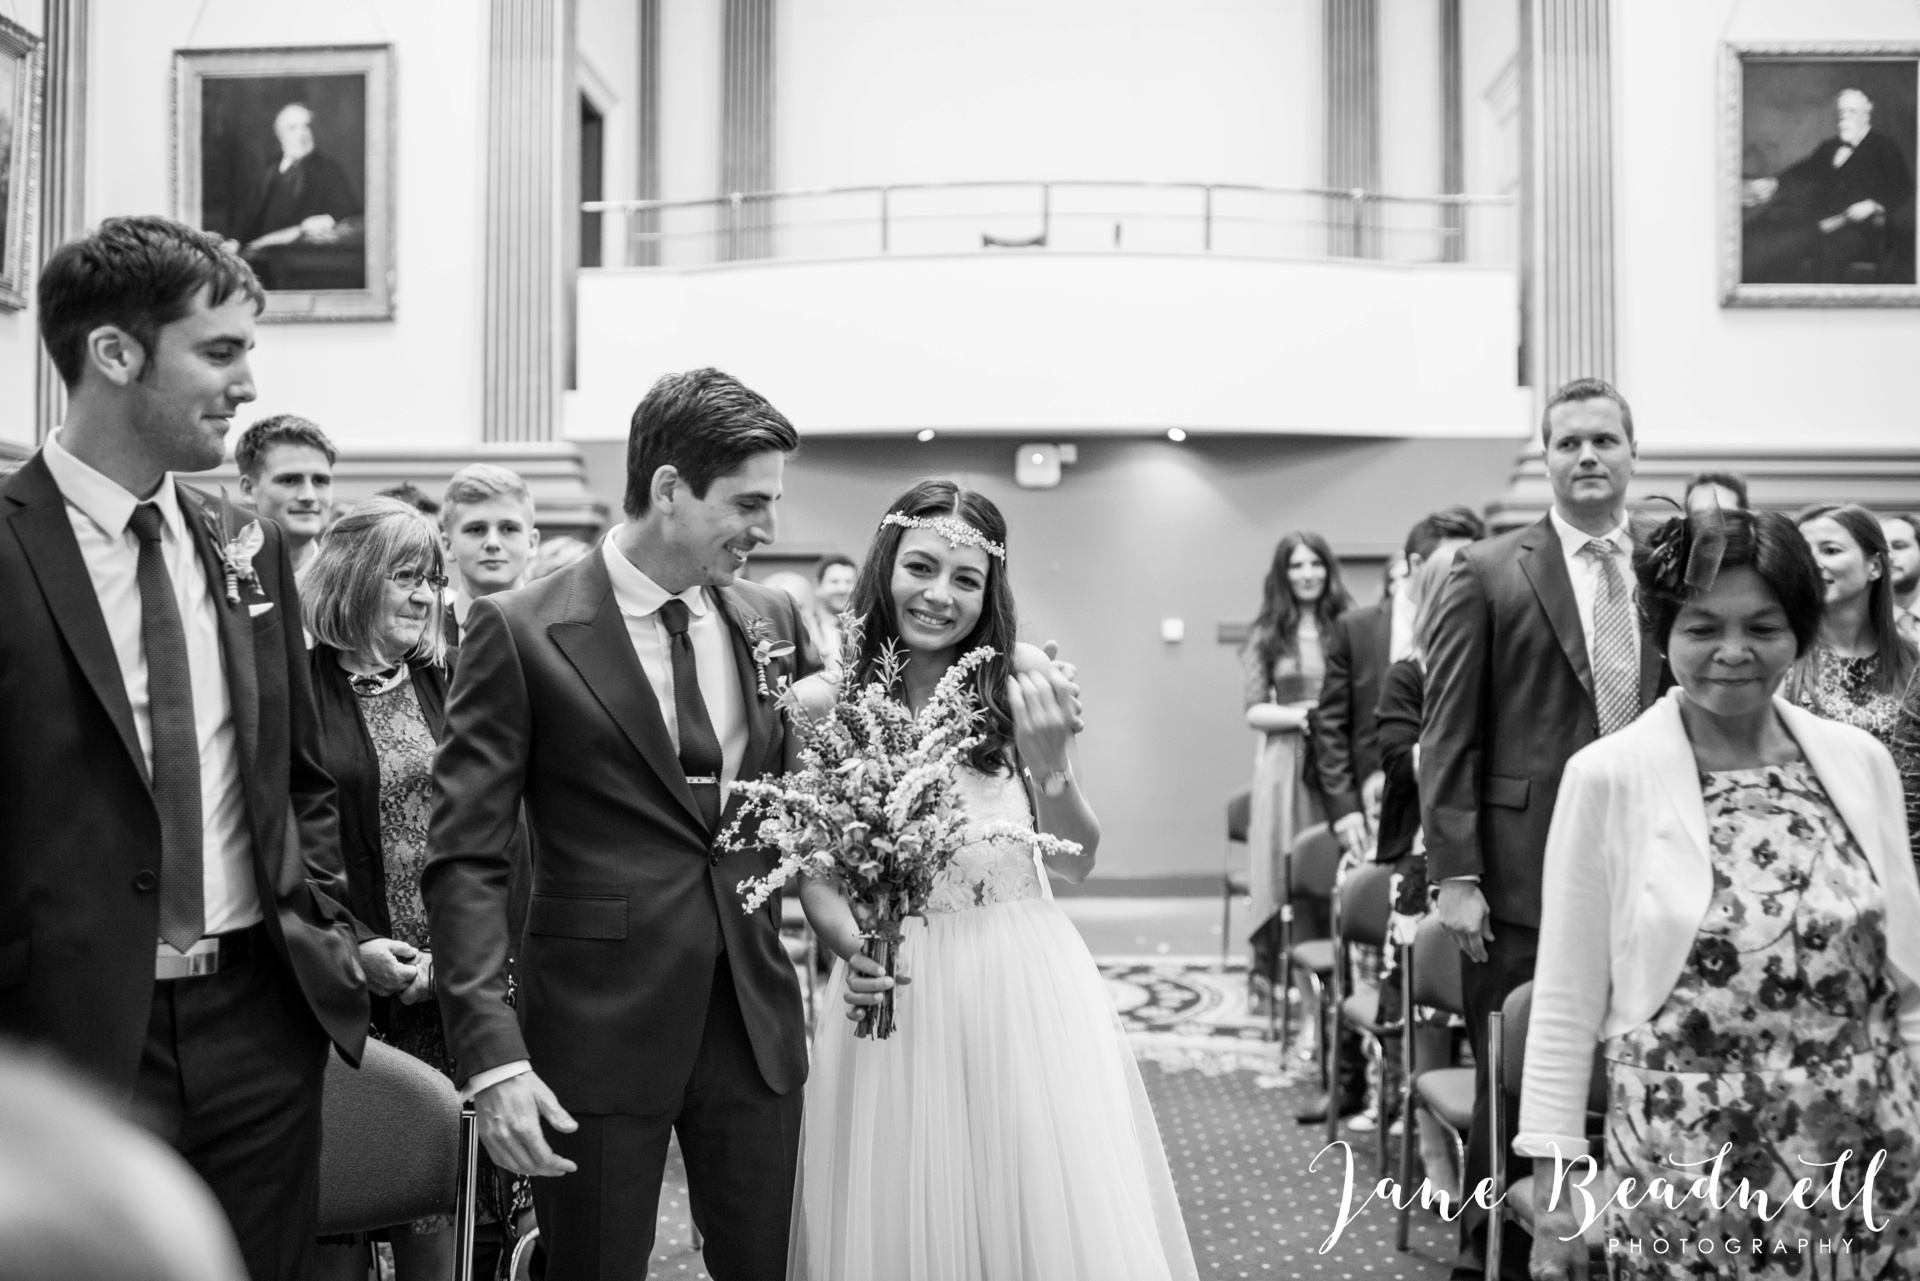 Left Bank Centre Leeds wedding photography by Jane Beadnell photography Yorkshire_0031